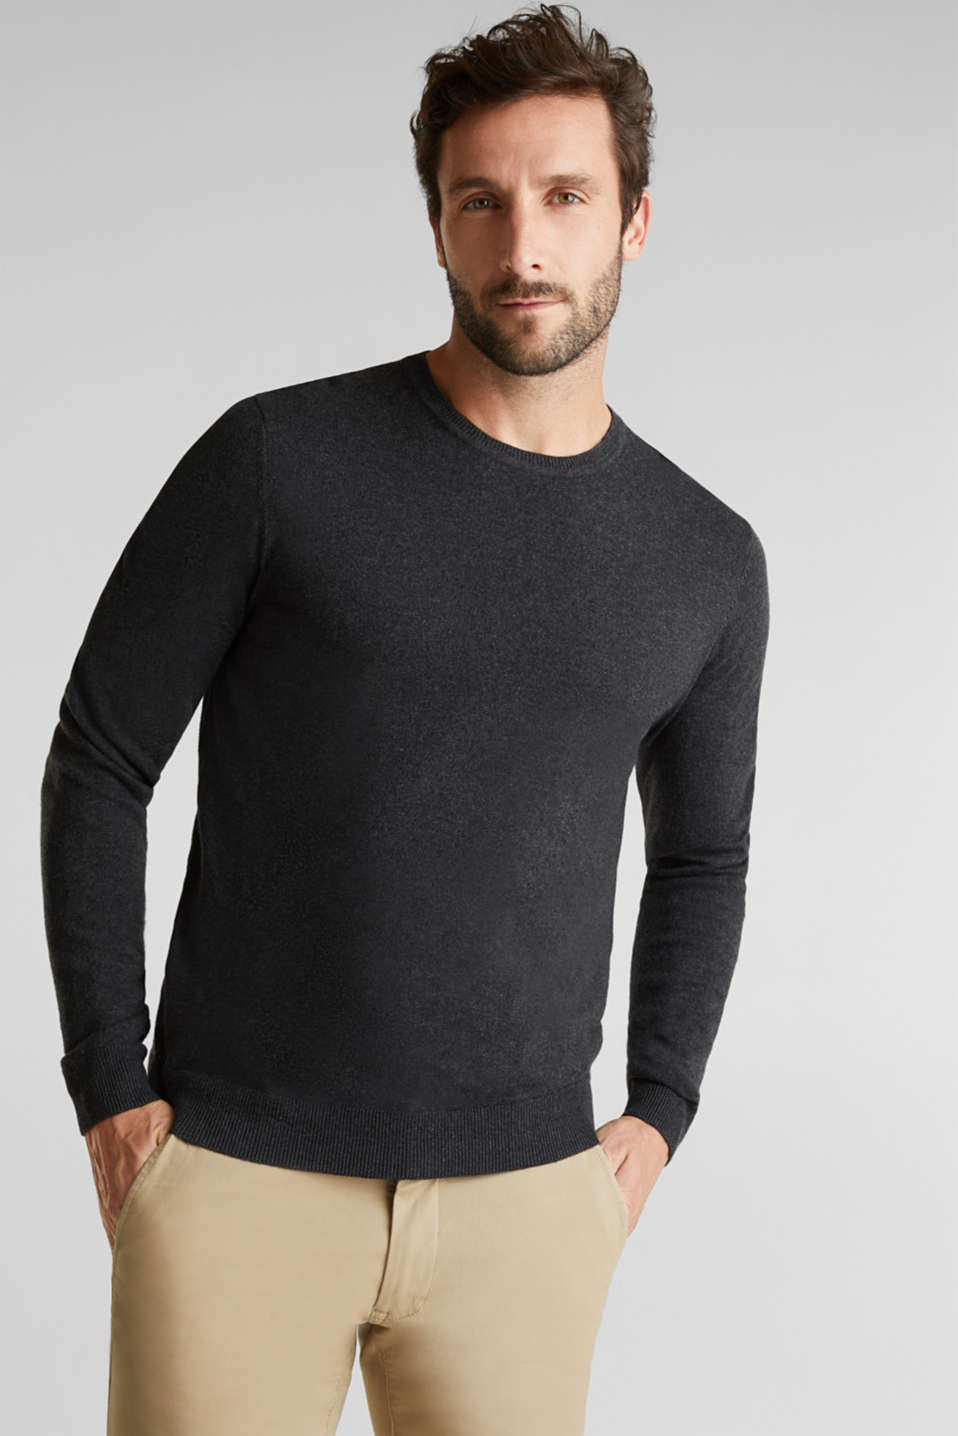 Esprit - With cashmere: fine knit jumper